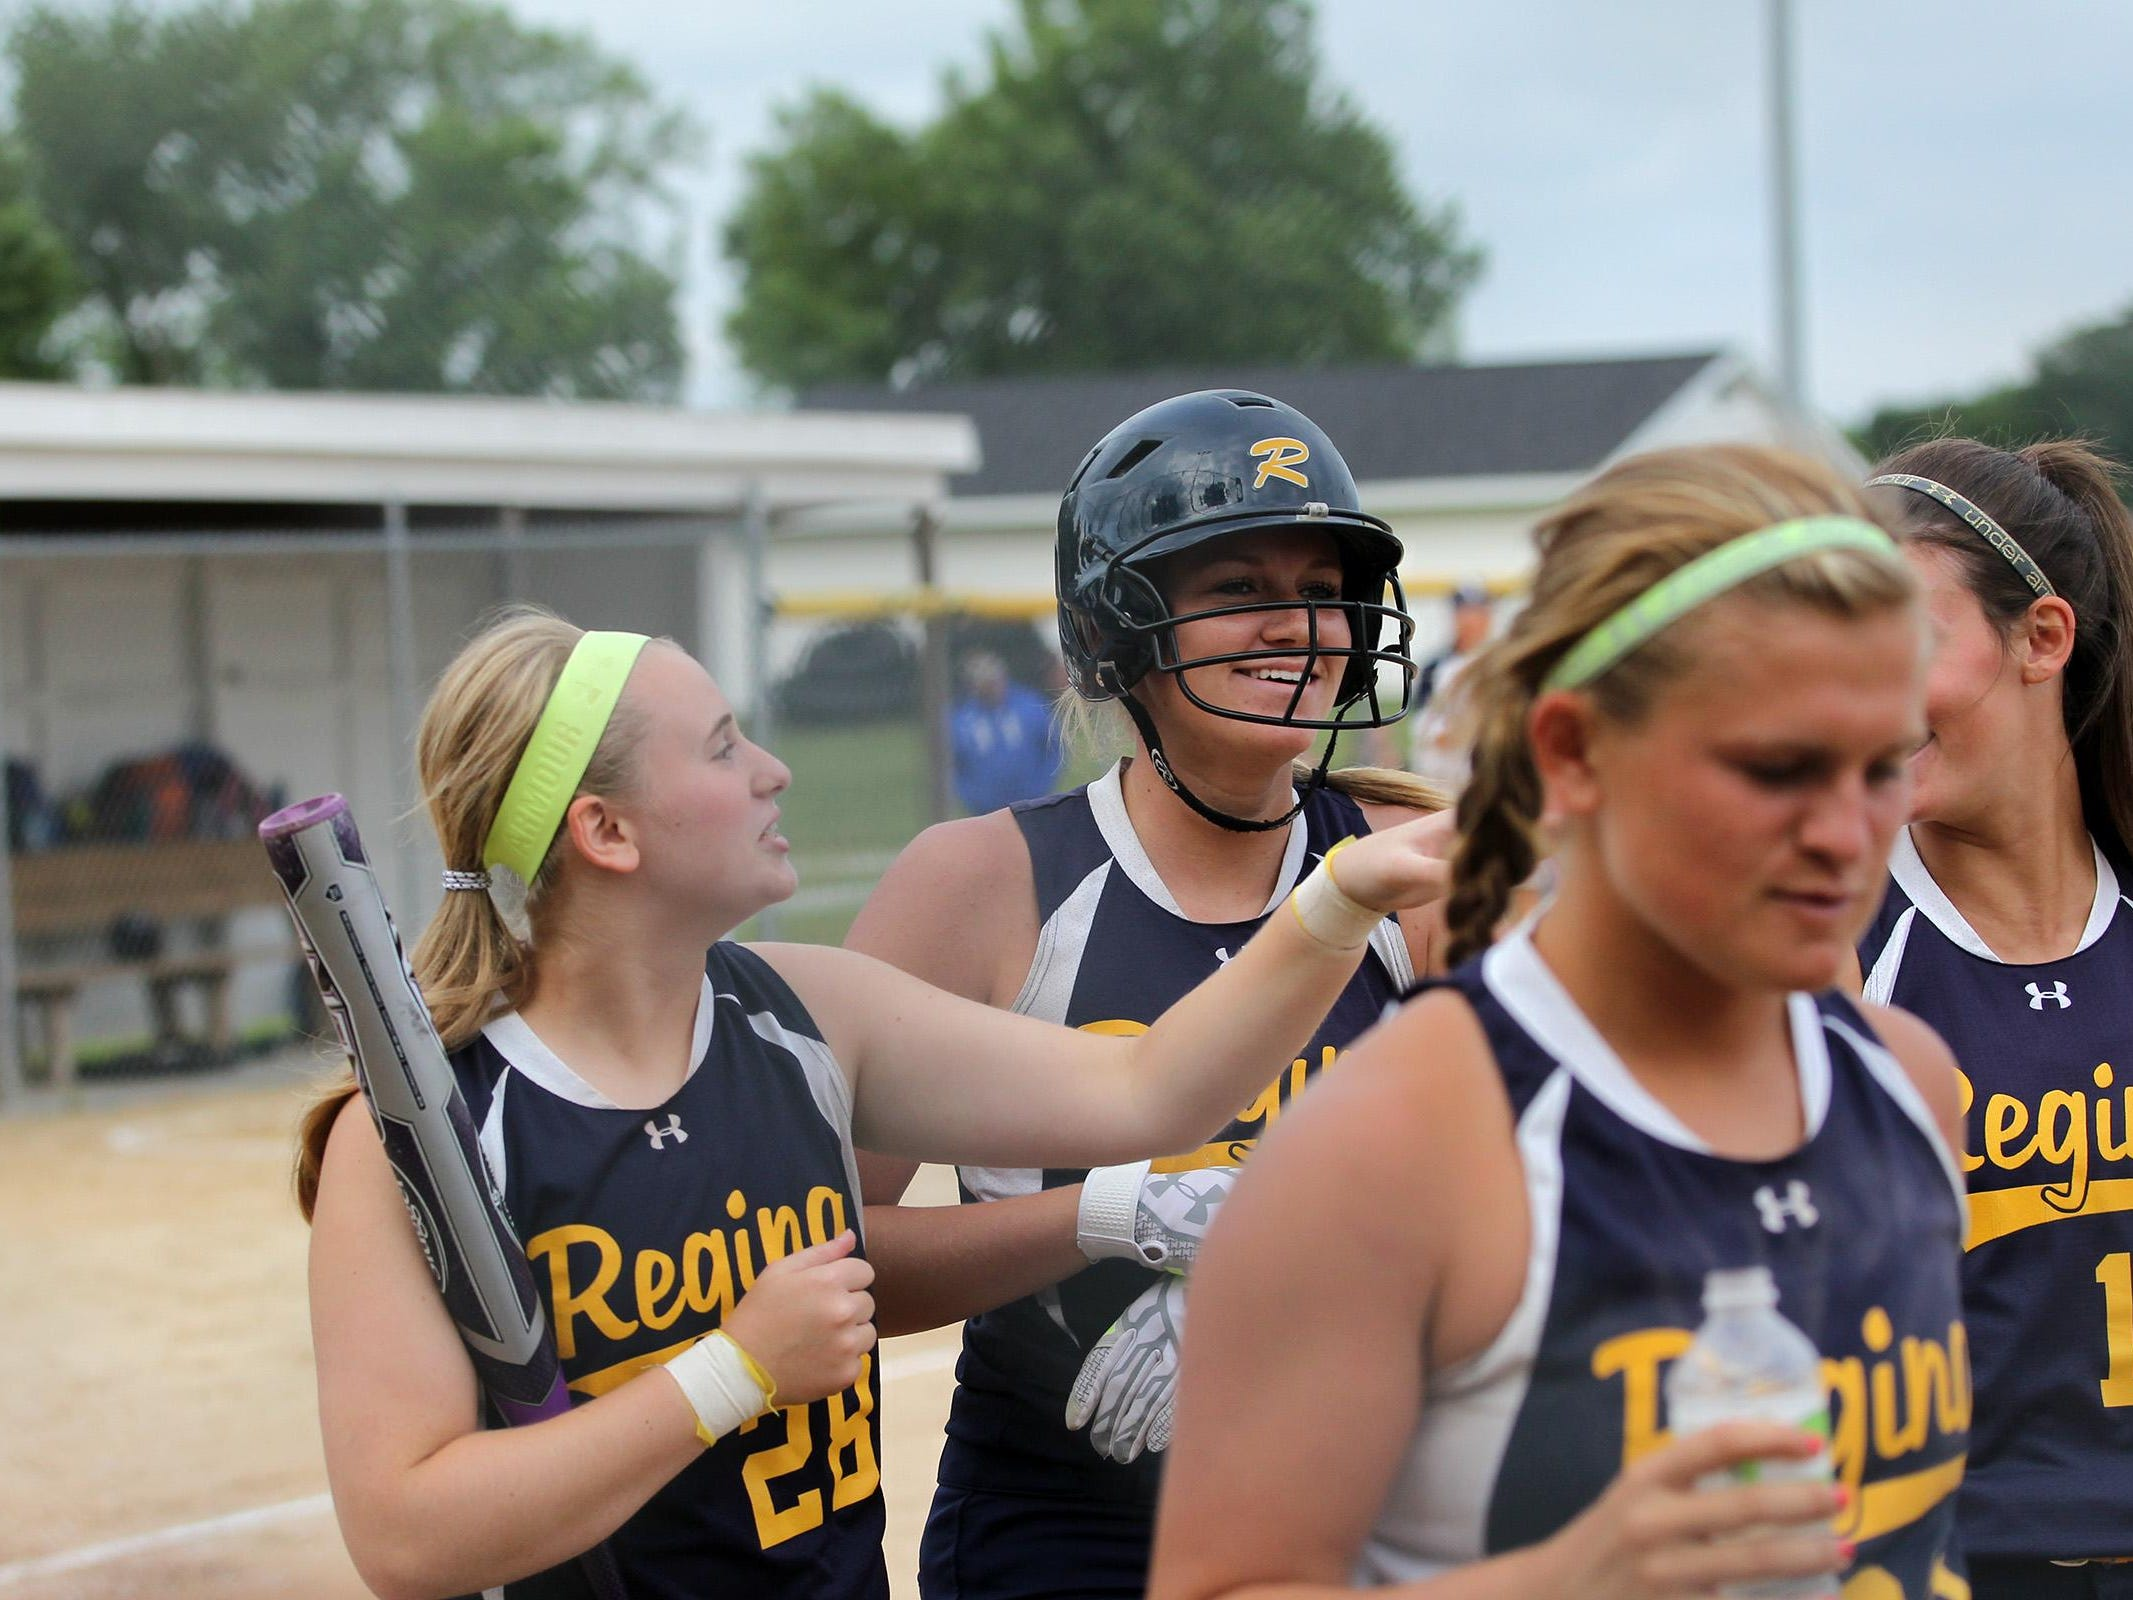 Regina's Kennedy Brown (center) heads to the dugout after her home run during the Regals' game against Columbus on Wednesday, July 8, 2015. David Scrivner / Iowa City Press-Citizen